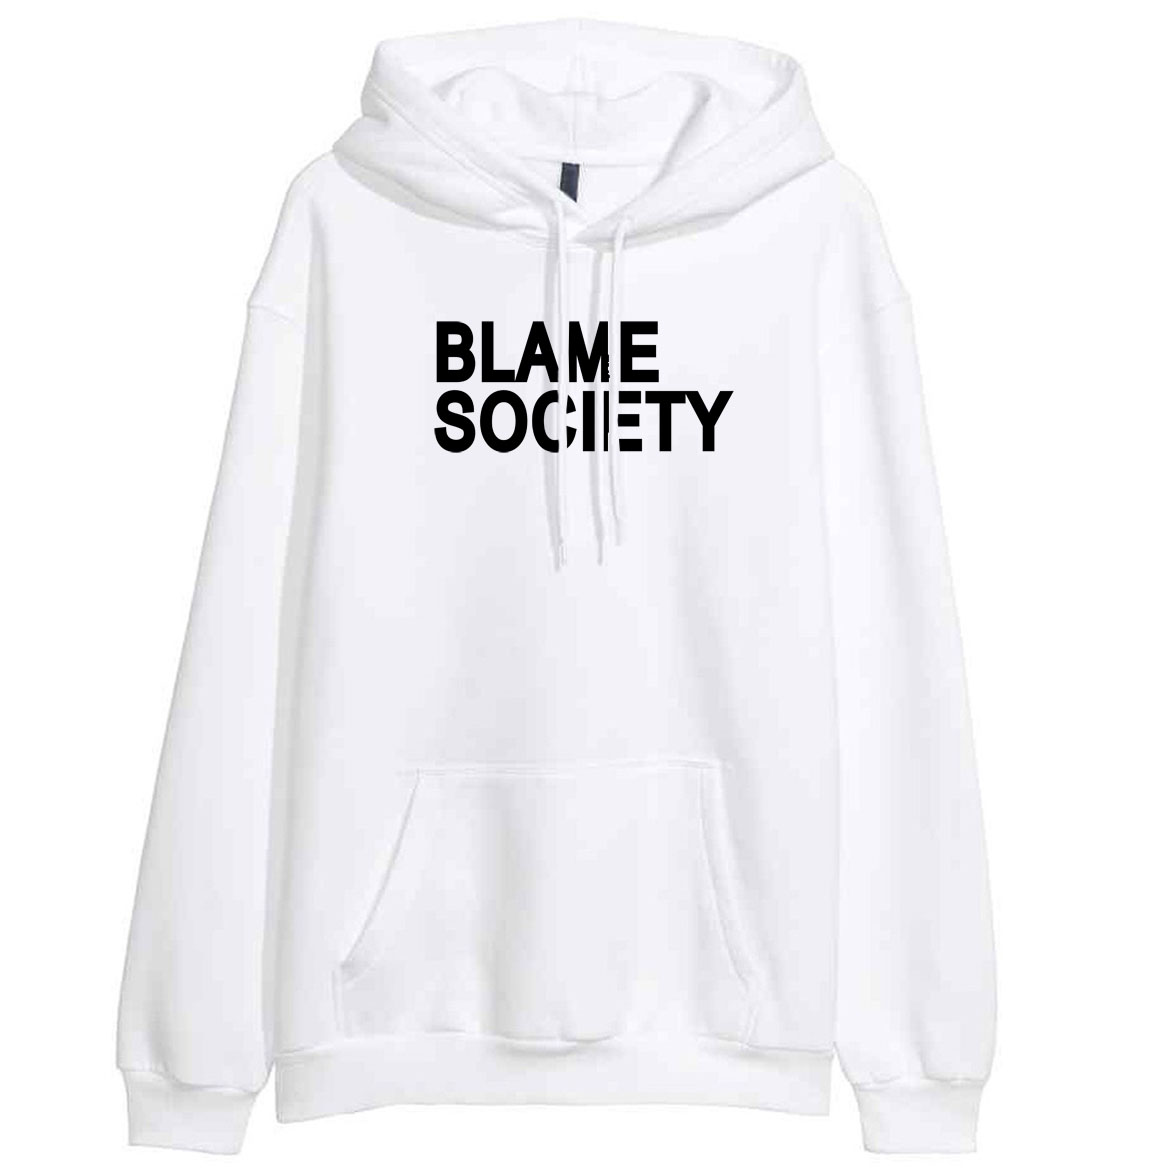 Women's Hoody Print BLAME SOCIETY Fashion Casual Sweatshirts 2019 Spring Winter New Female Sweatshirt Hoodies Harajuku Tracksuit